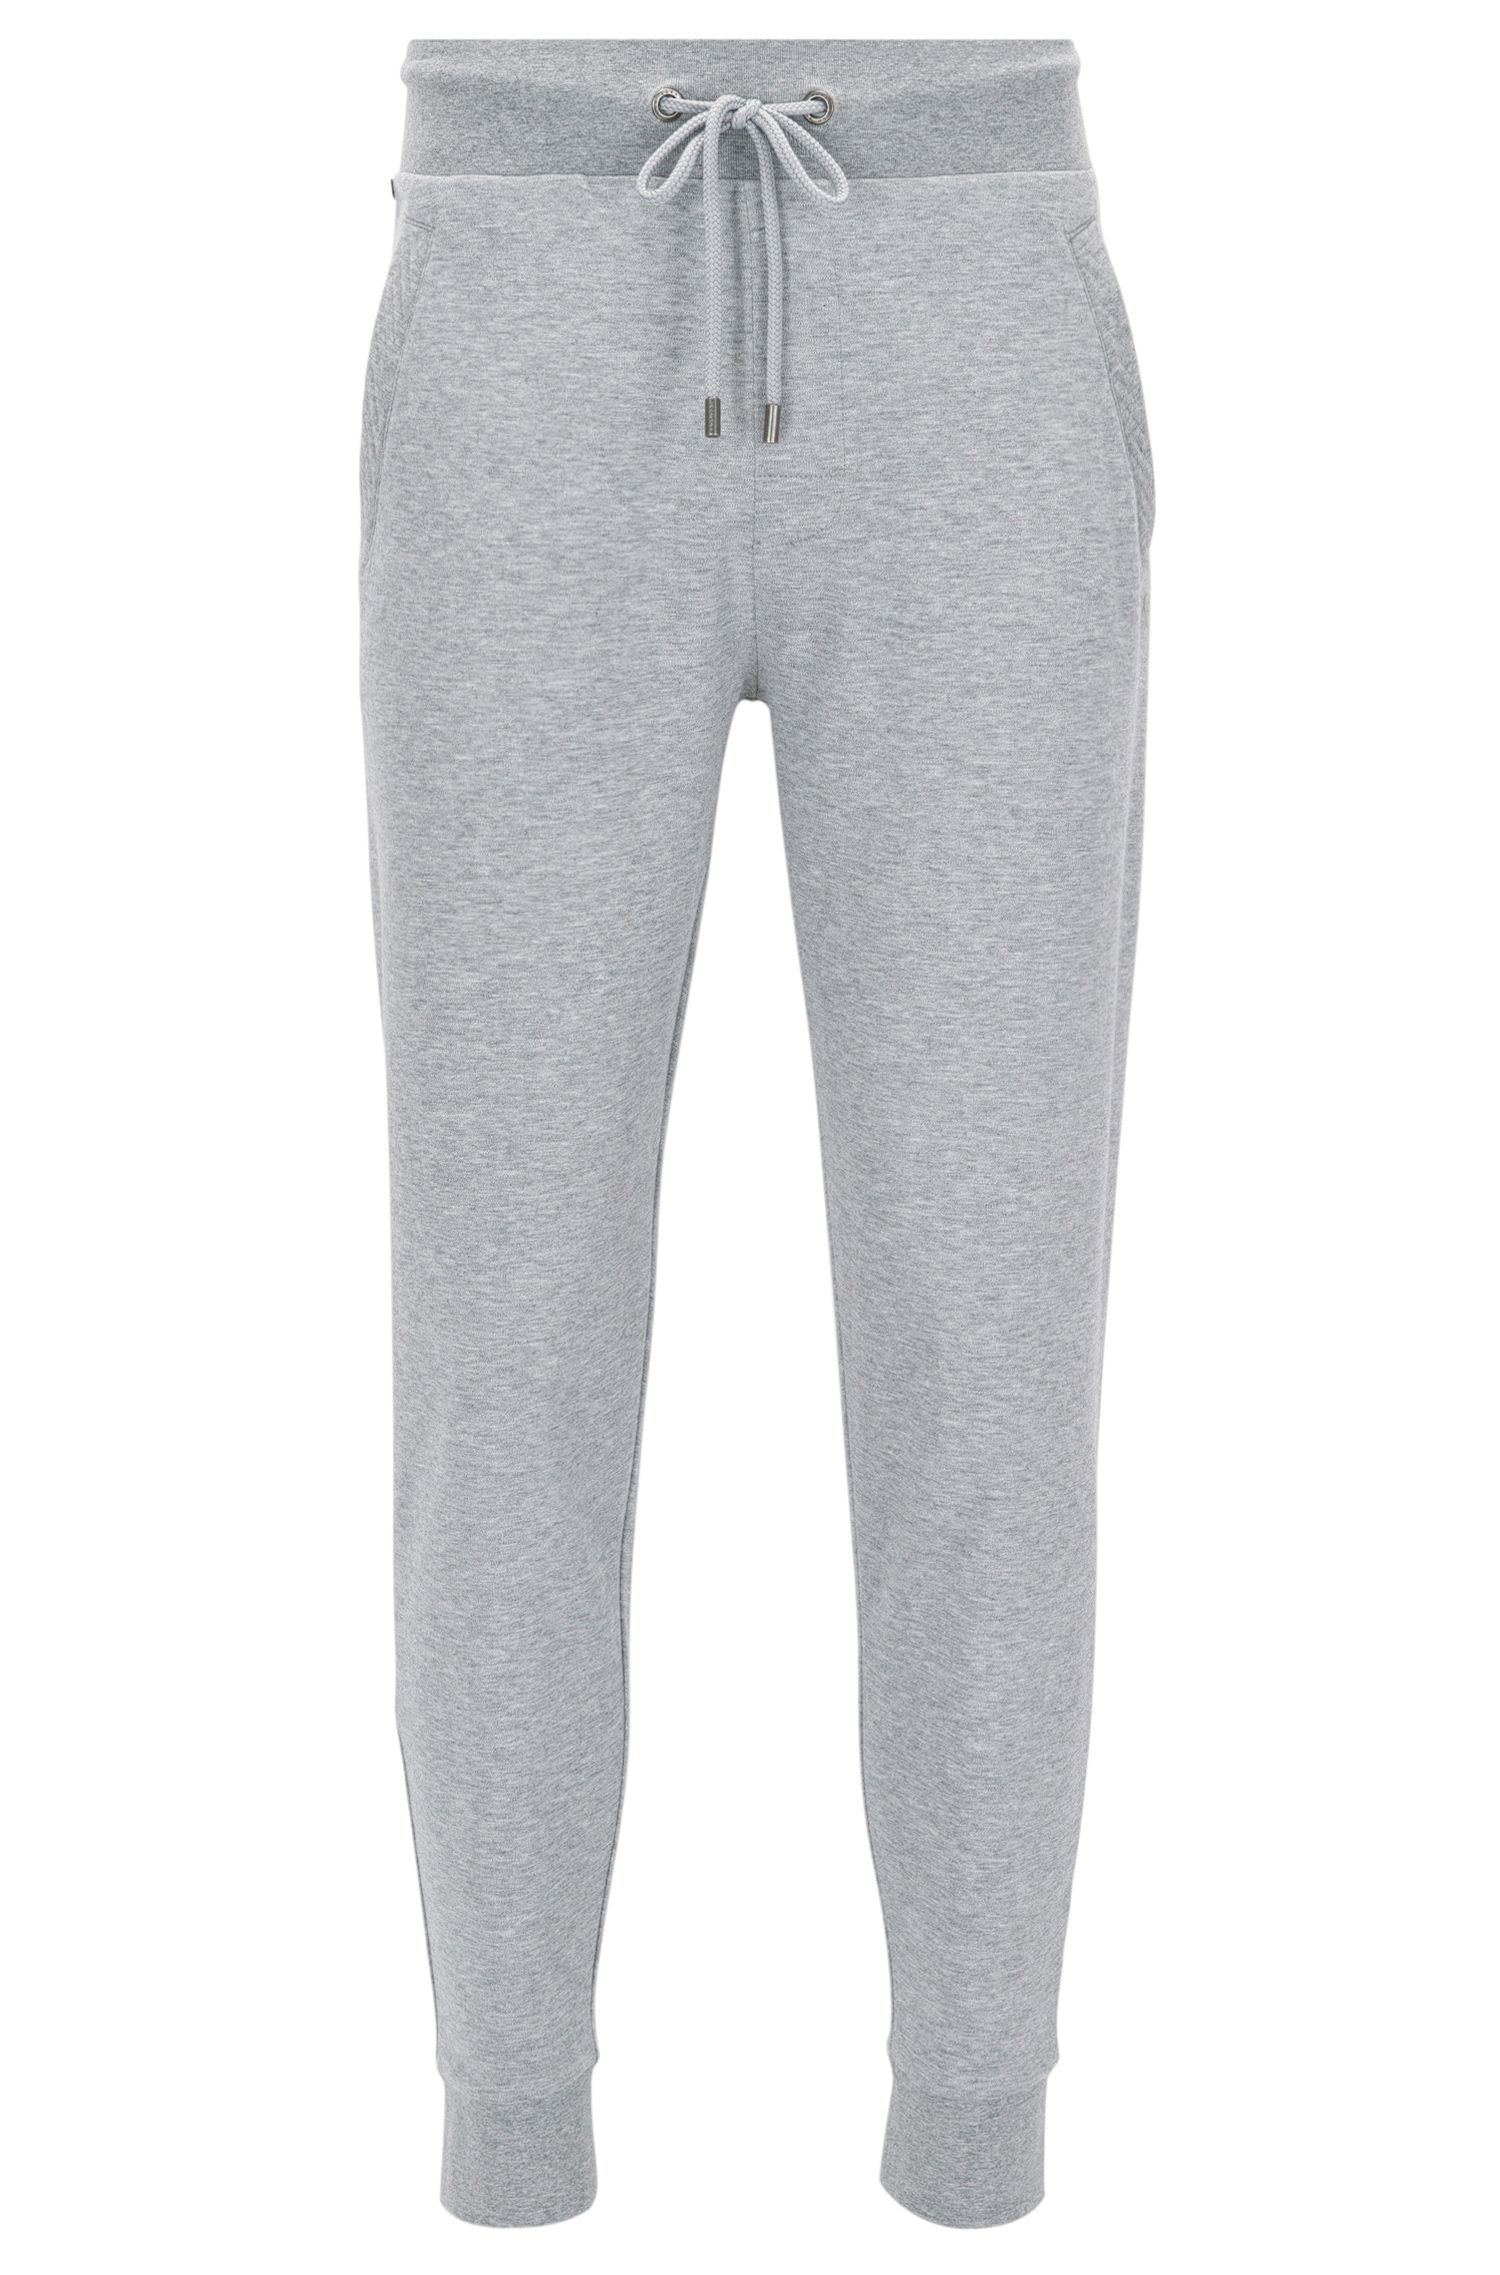 Drawstring jogging trousers in pure cotton